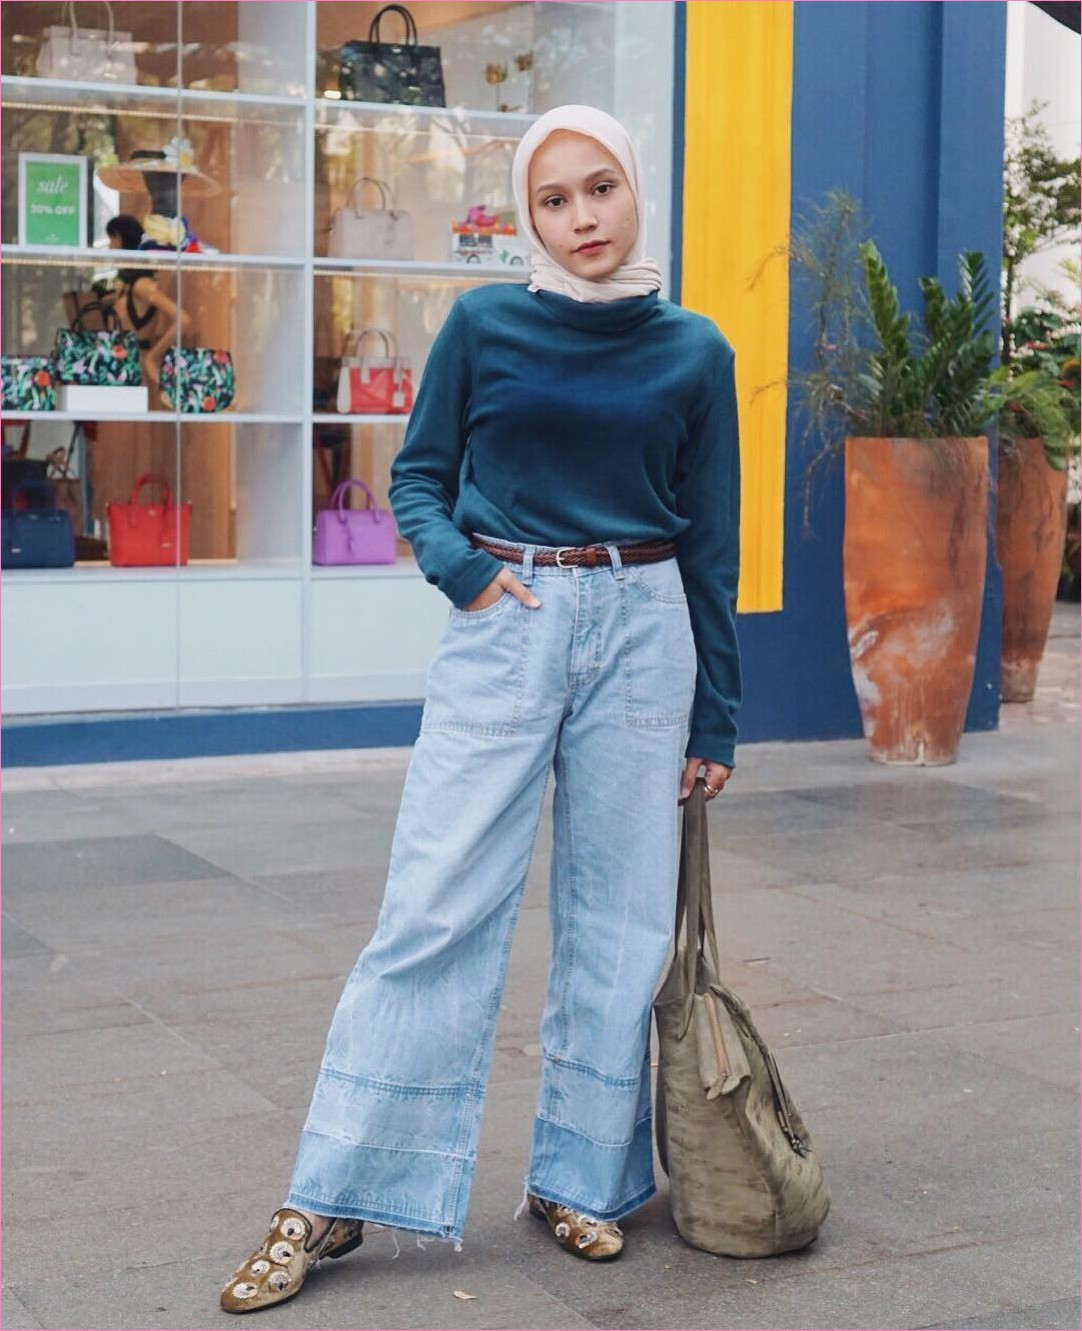 Image result for hijab shirt and jeans